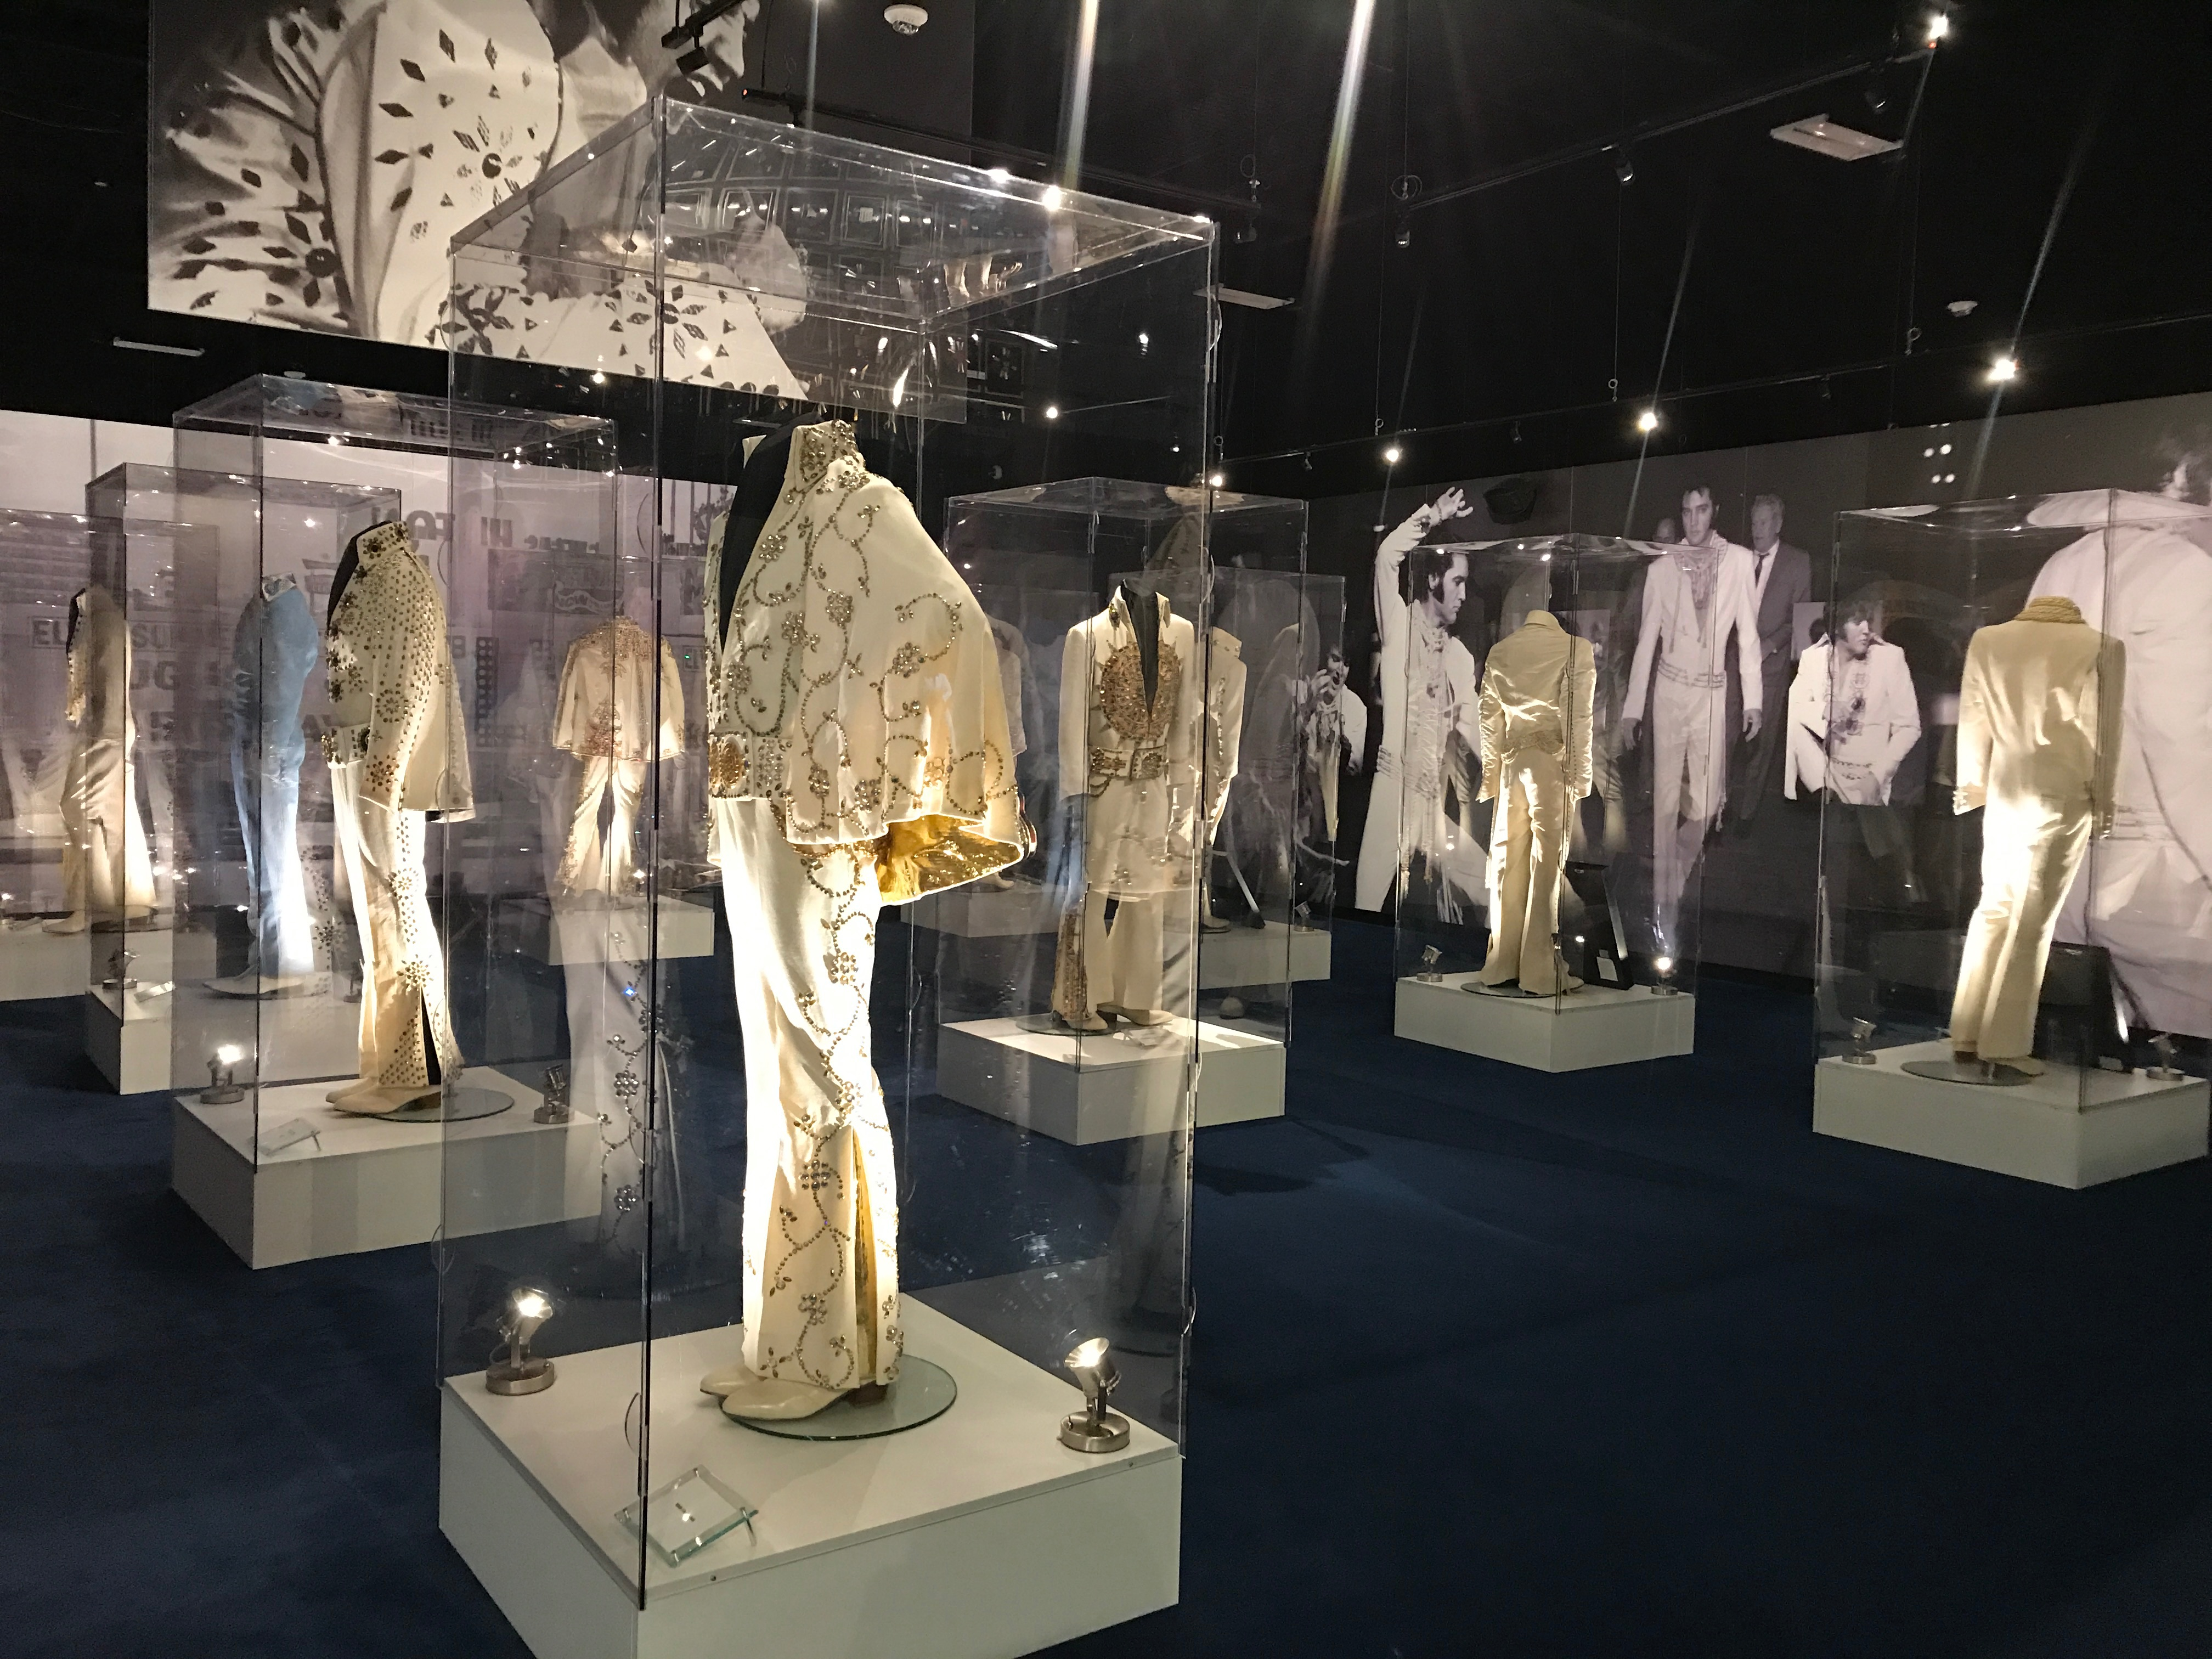 Elvis Presley's outfits